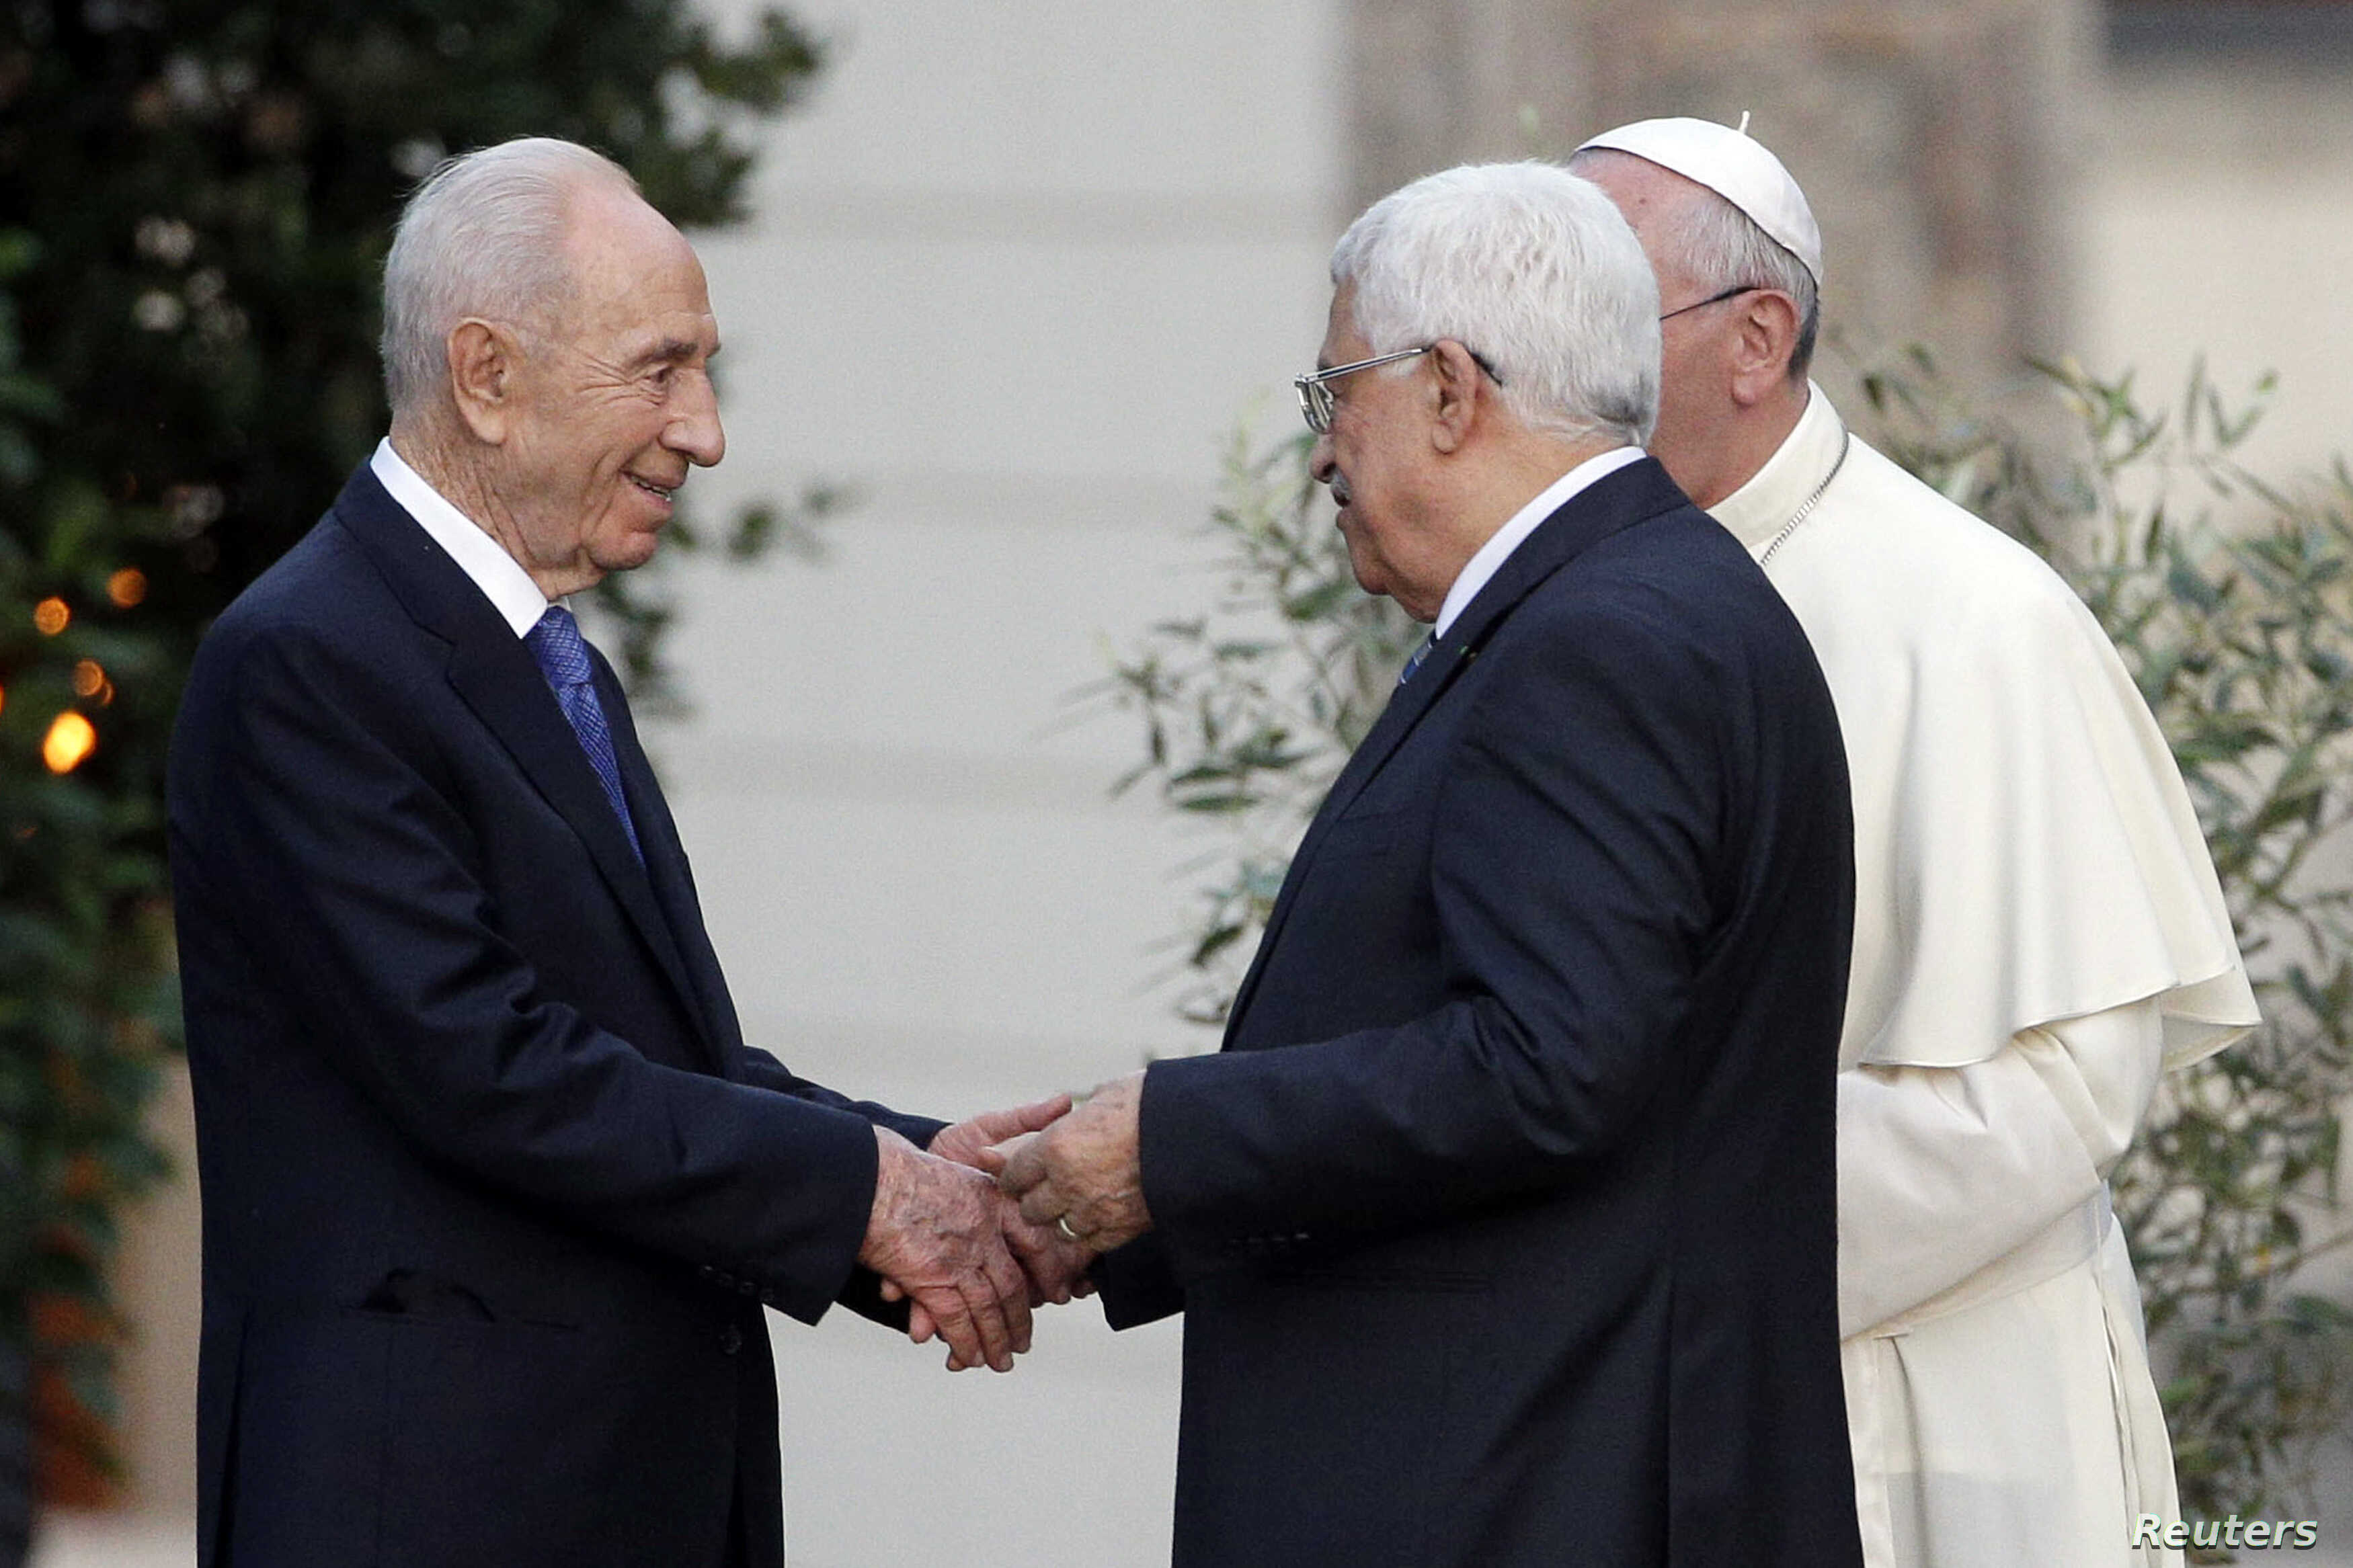 Israeli President Shimon Peres shakes hands with Palestinian President Mahmoud Abbas as Pope Francis watches after a prayer meeting at the Vatican, June 8, 2014.